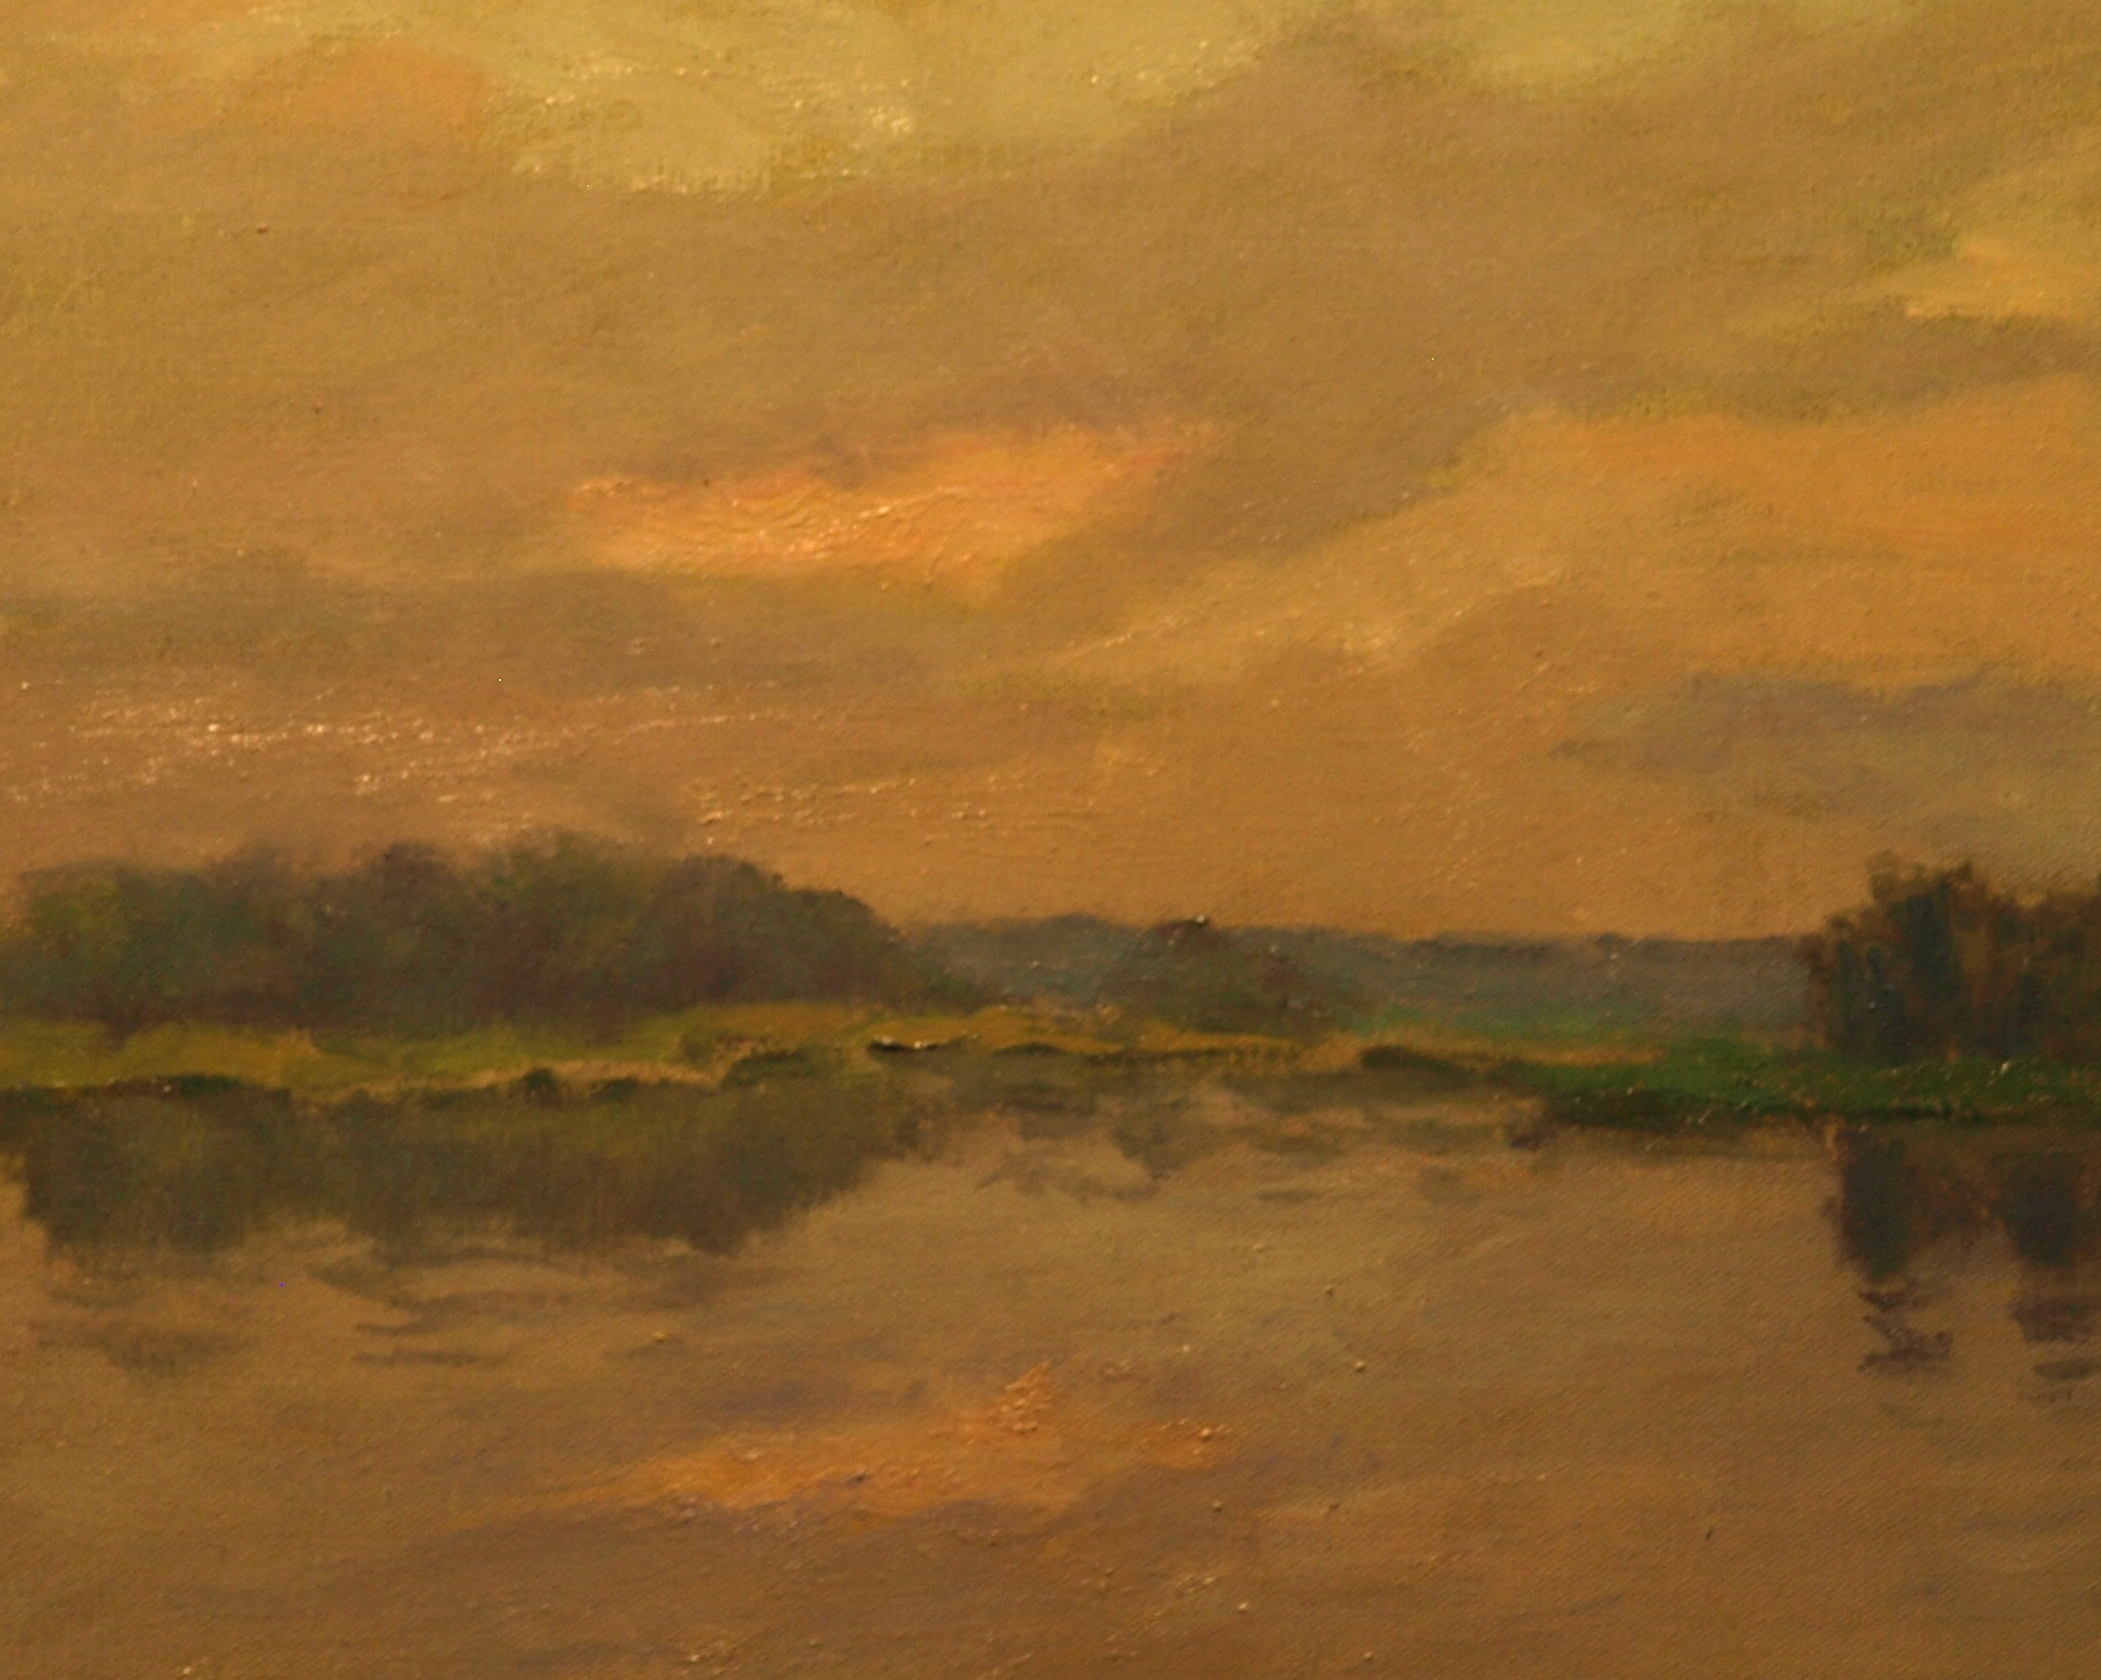 Overcast Sunrise, Oil on Canvas, 16 x 20 Inches, by Richard Stalter, $450